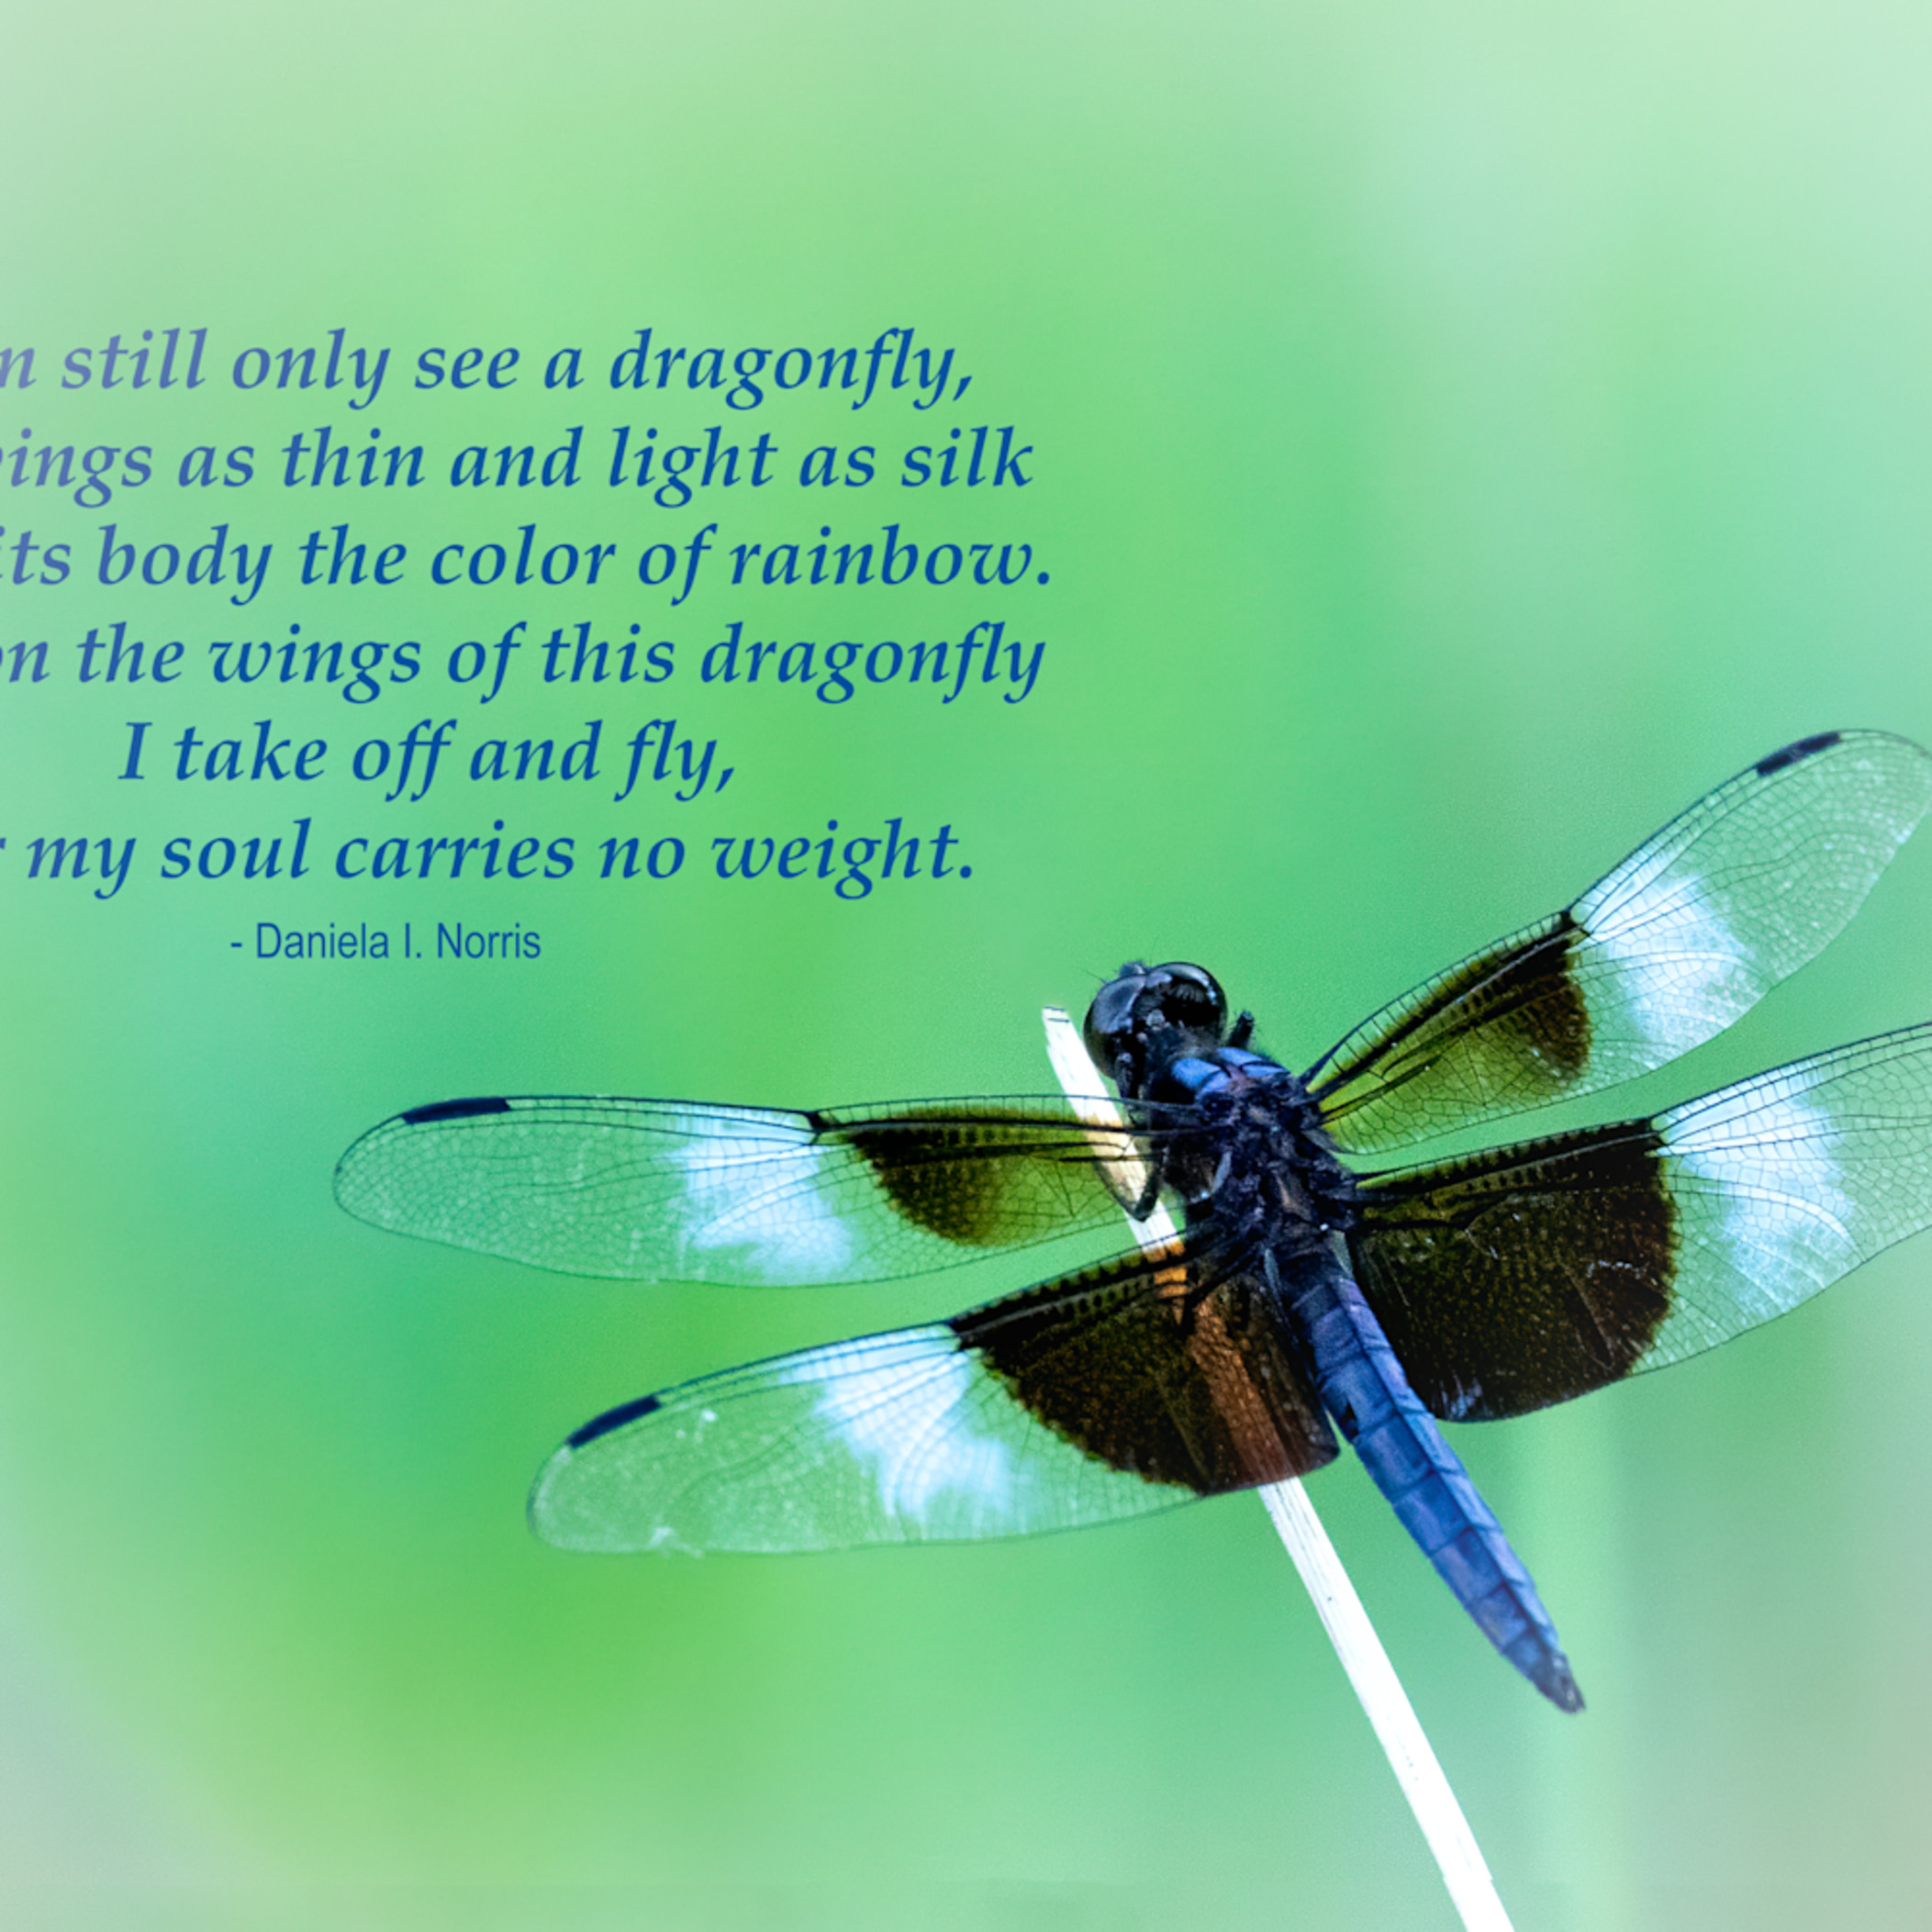 Dragonfly   my soul carries no weight gpbexd